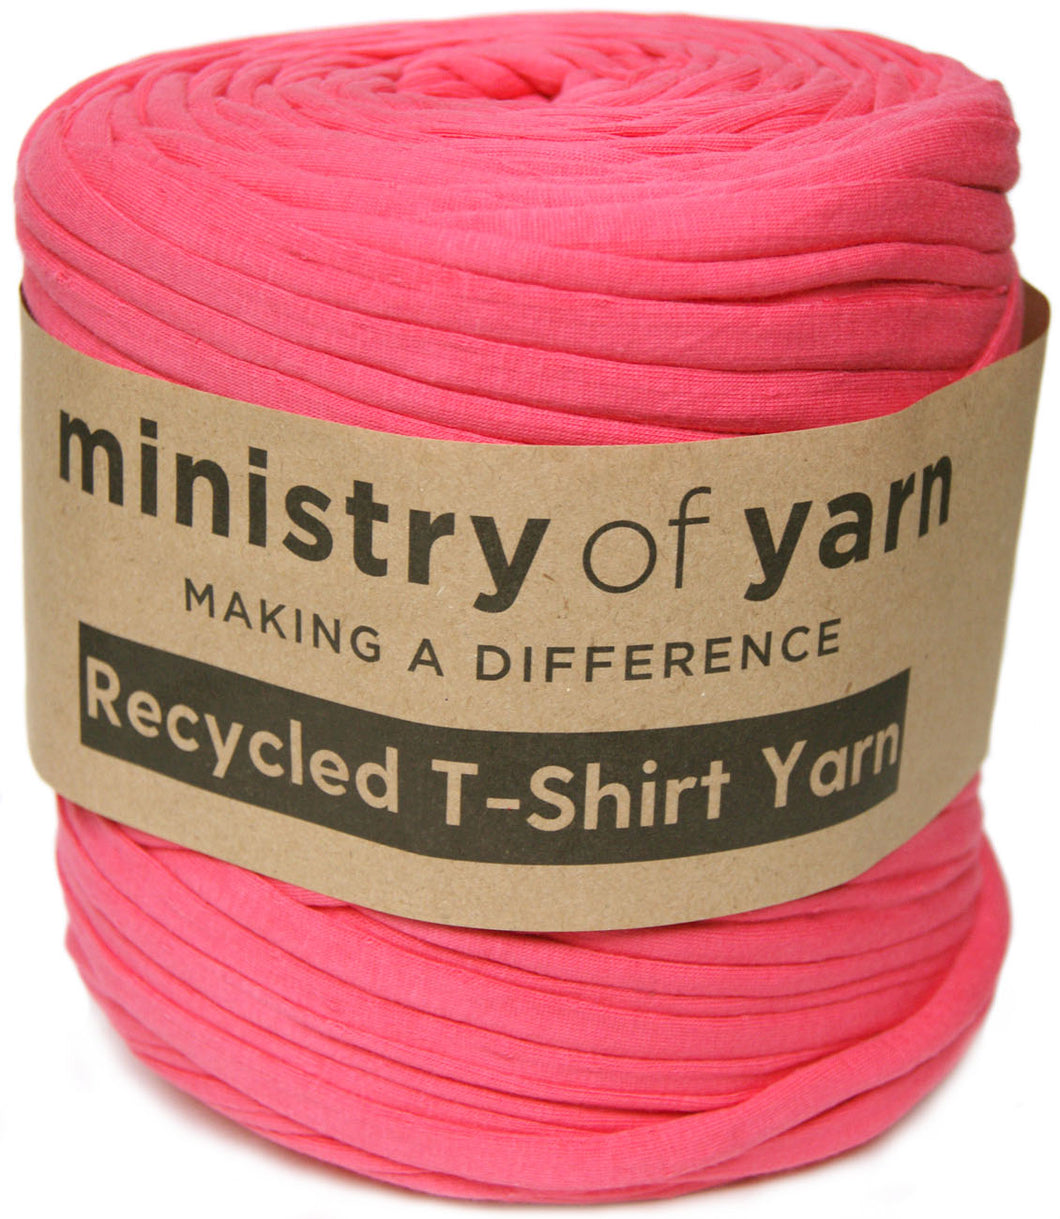 Bright Pink recycled t-shirt yarn Australia